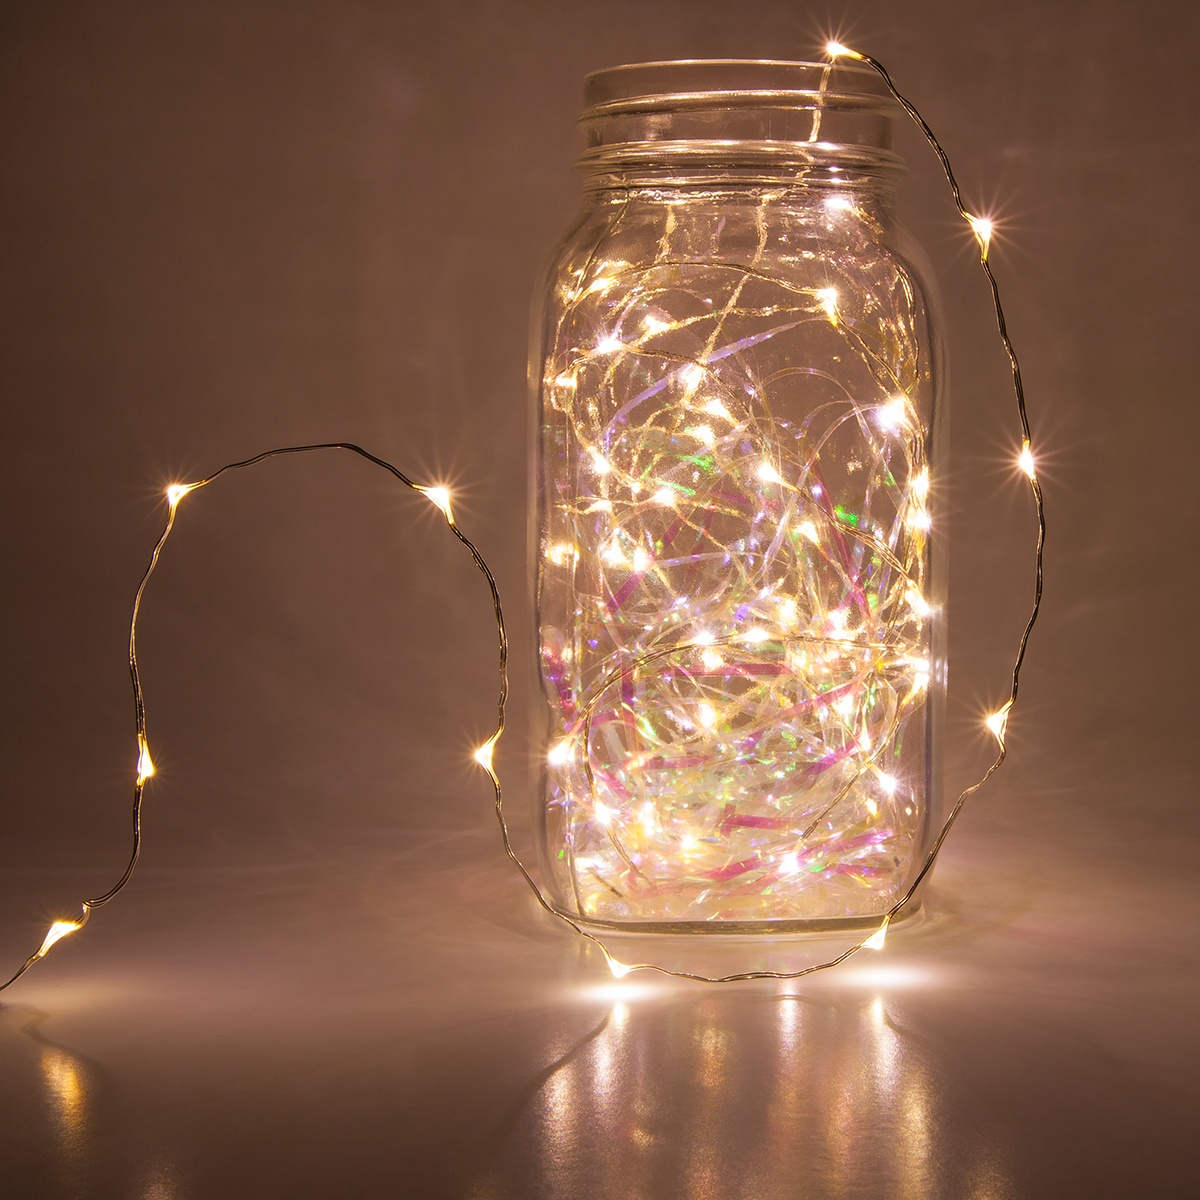 Novelty Lights - 10u0026#39; Warm White LED Fairy Light String